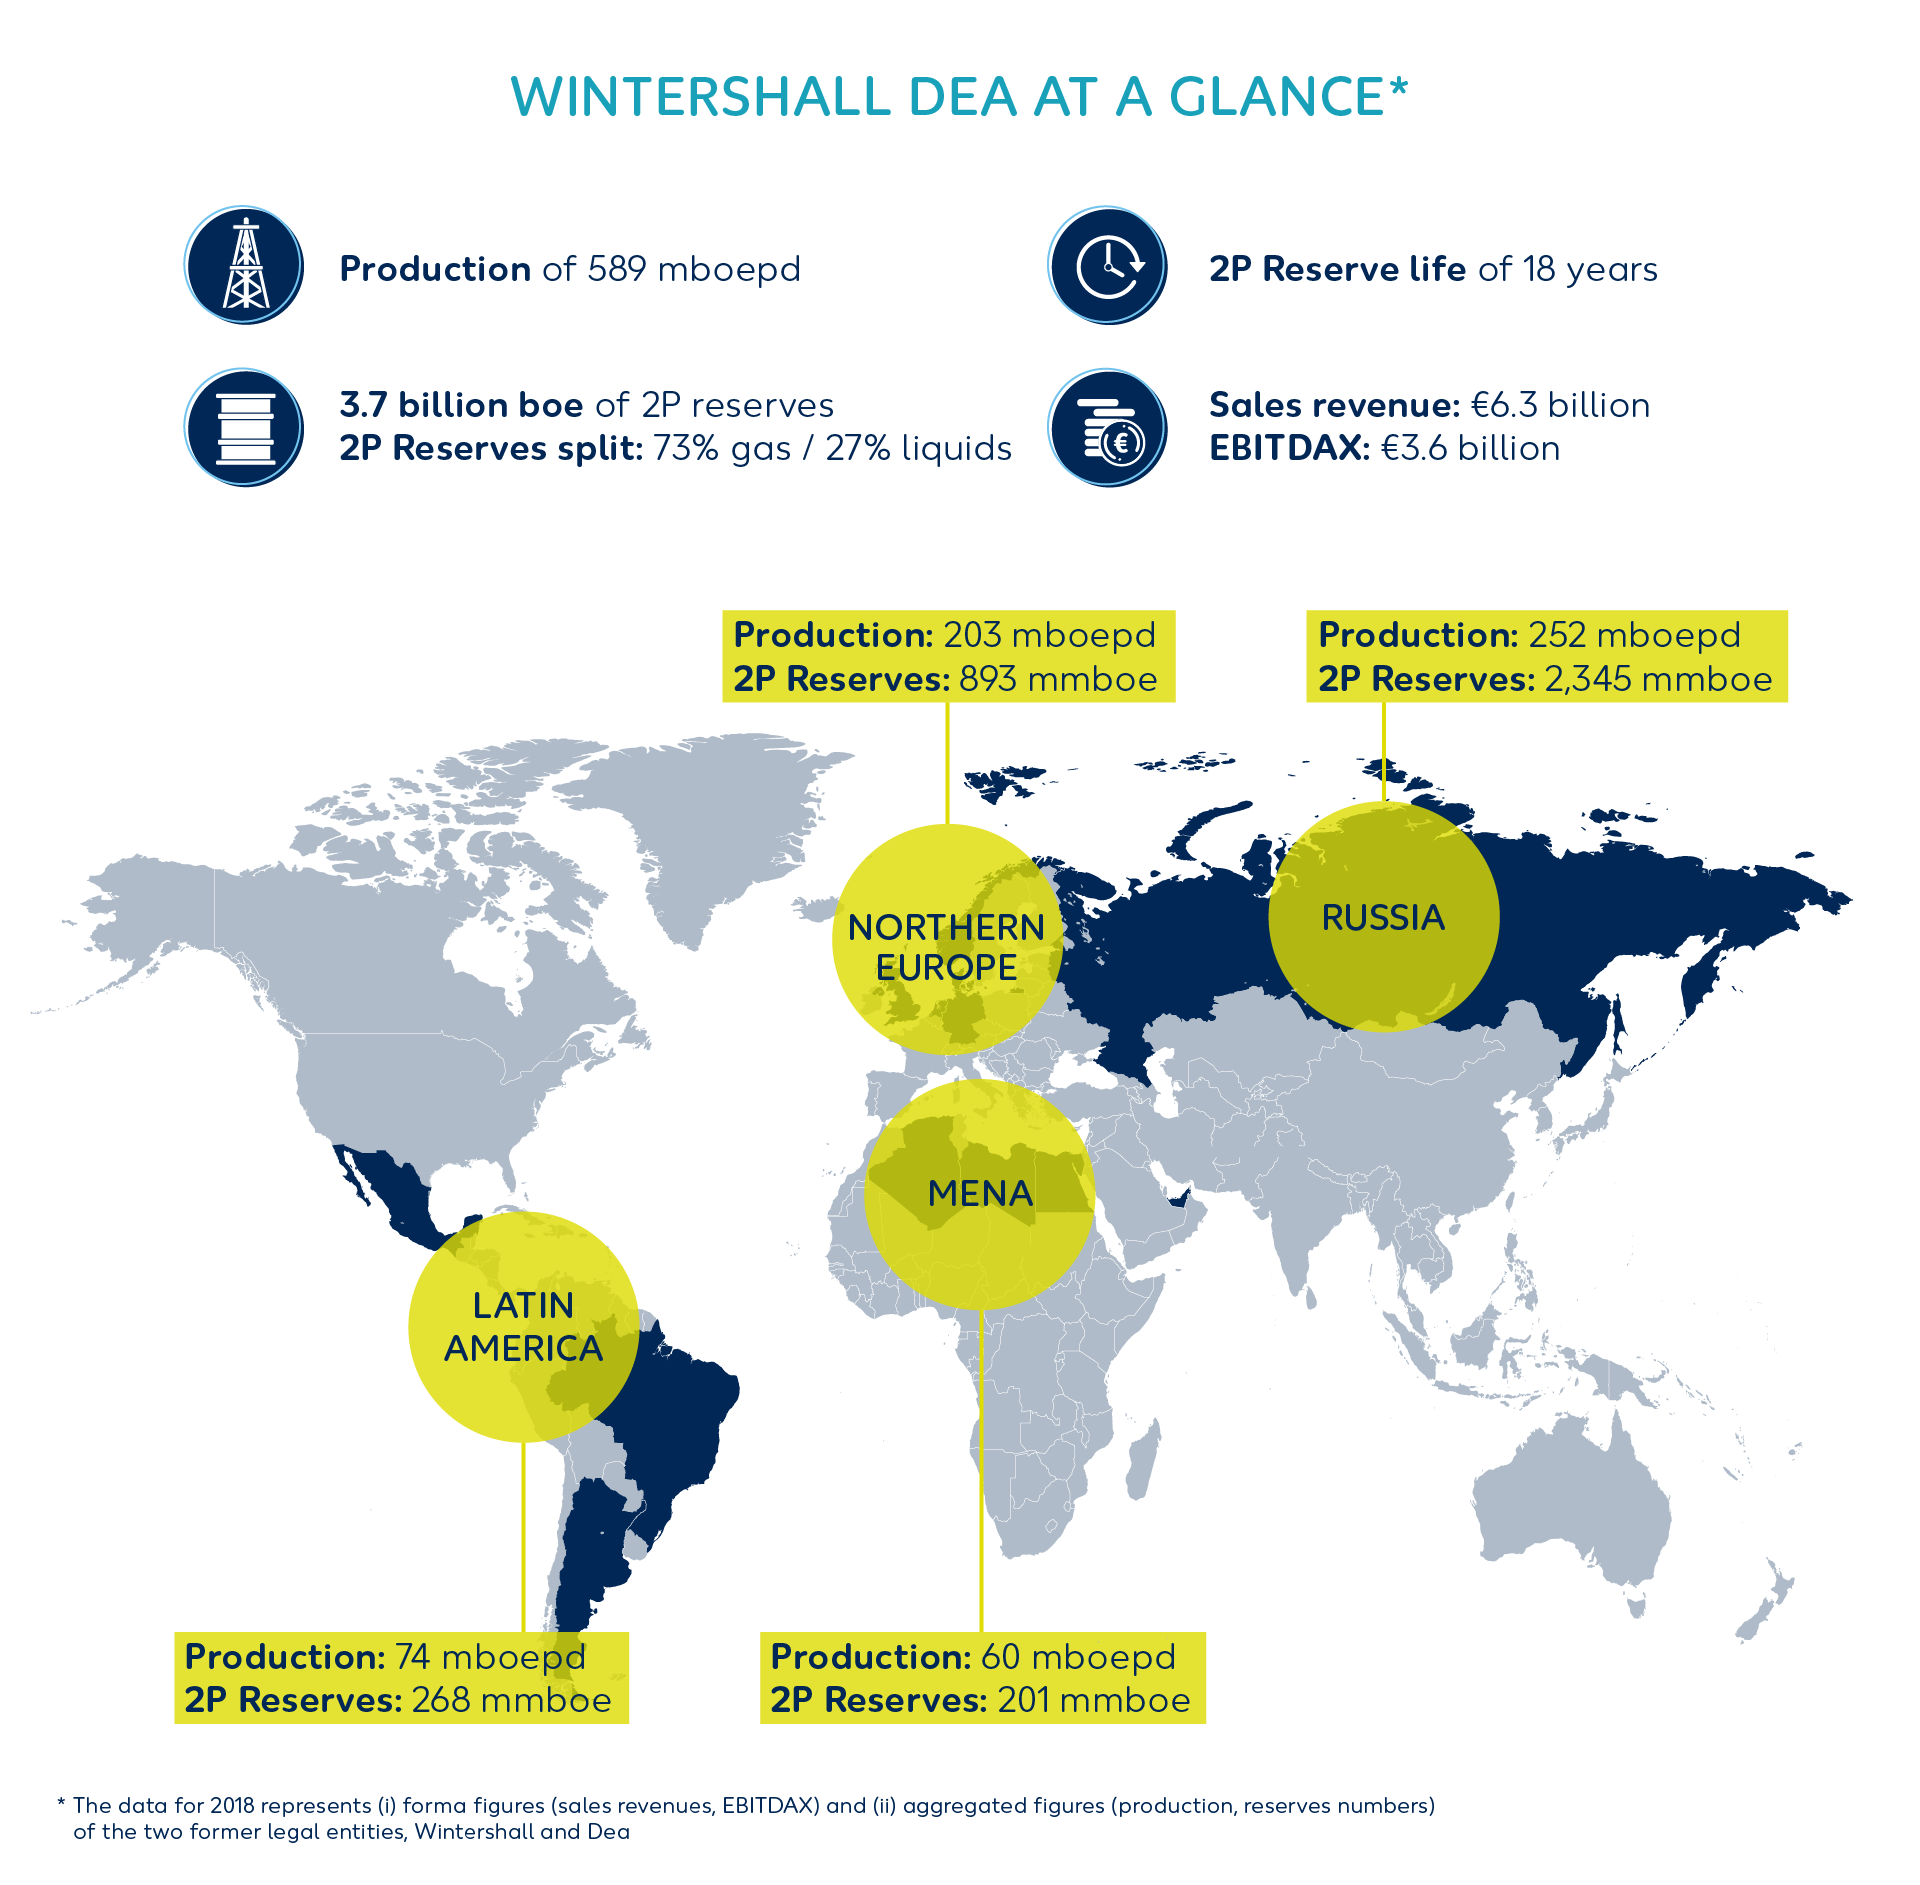 Wintershall Dea Finances at a glance